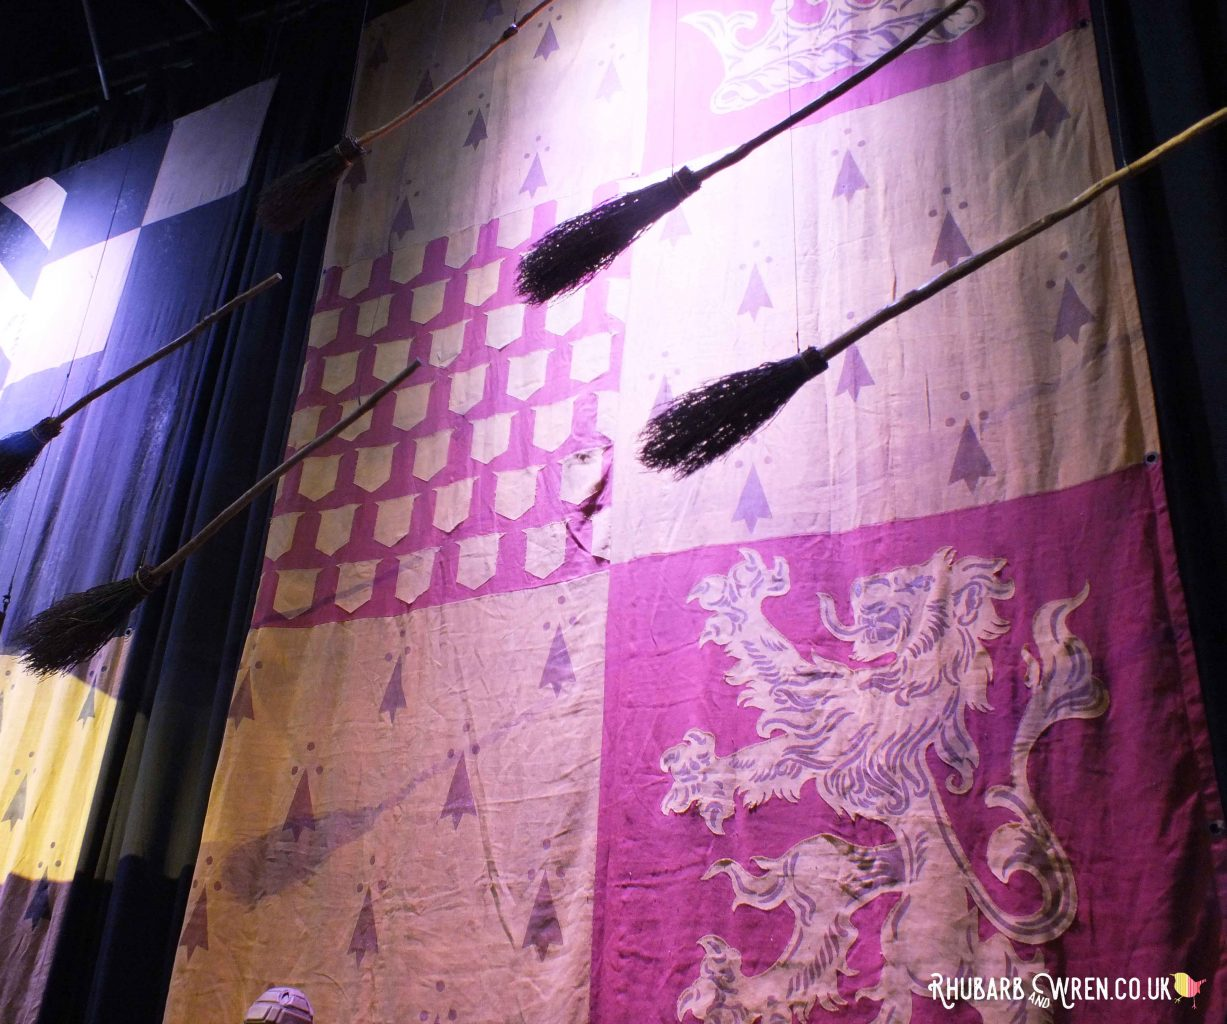 Broomsticks flying in front of a gigantic banner at the Harry Potter studio tour, UK.